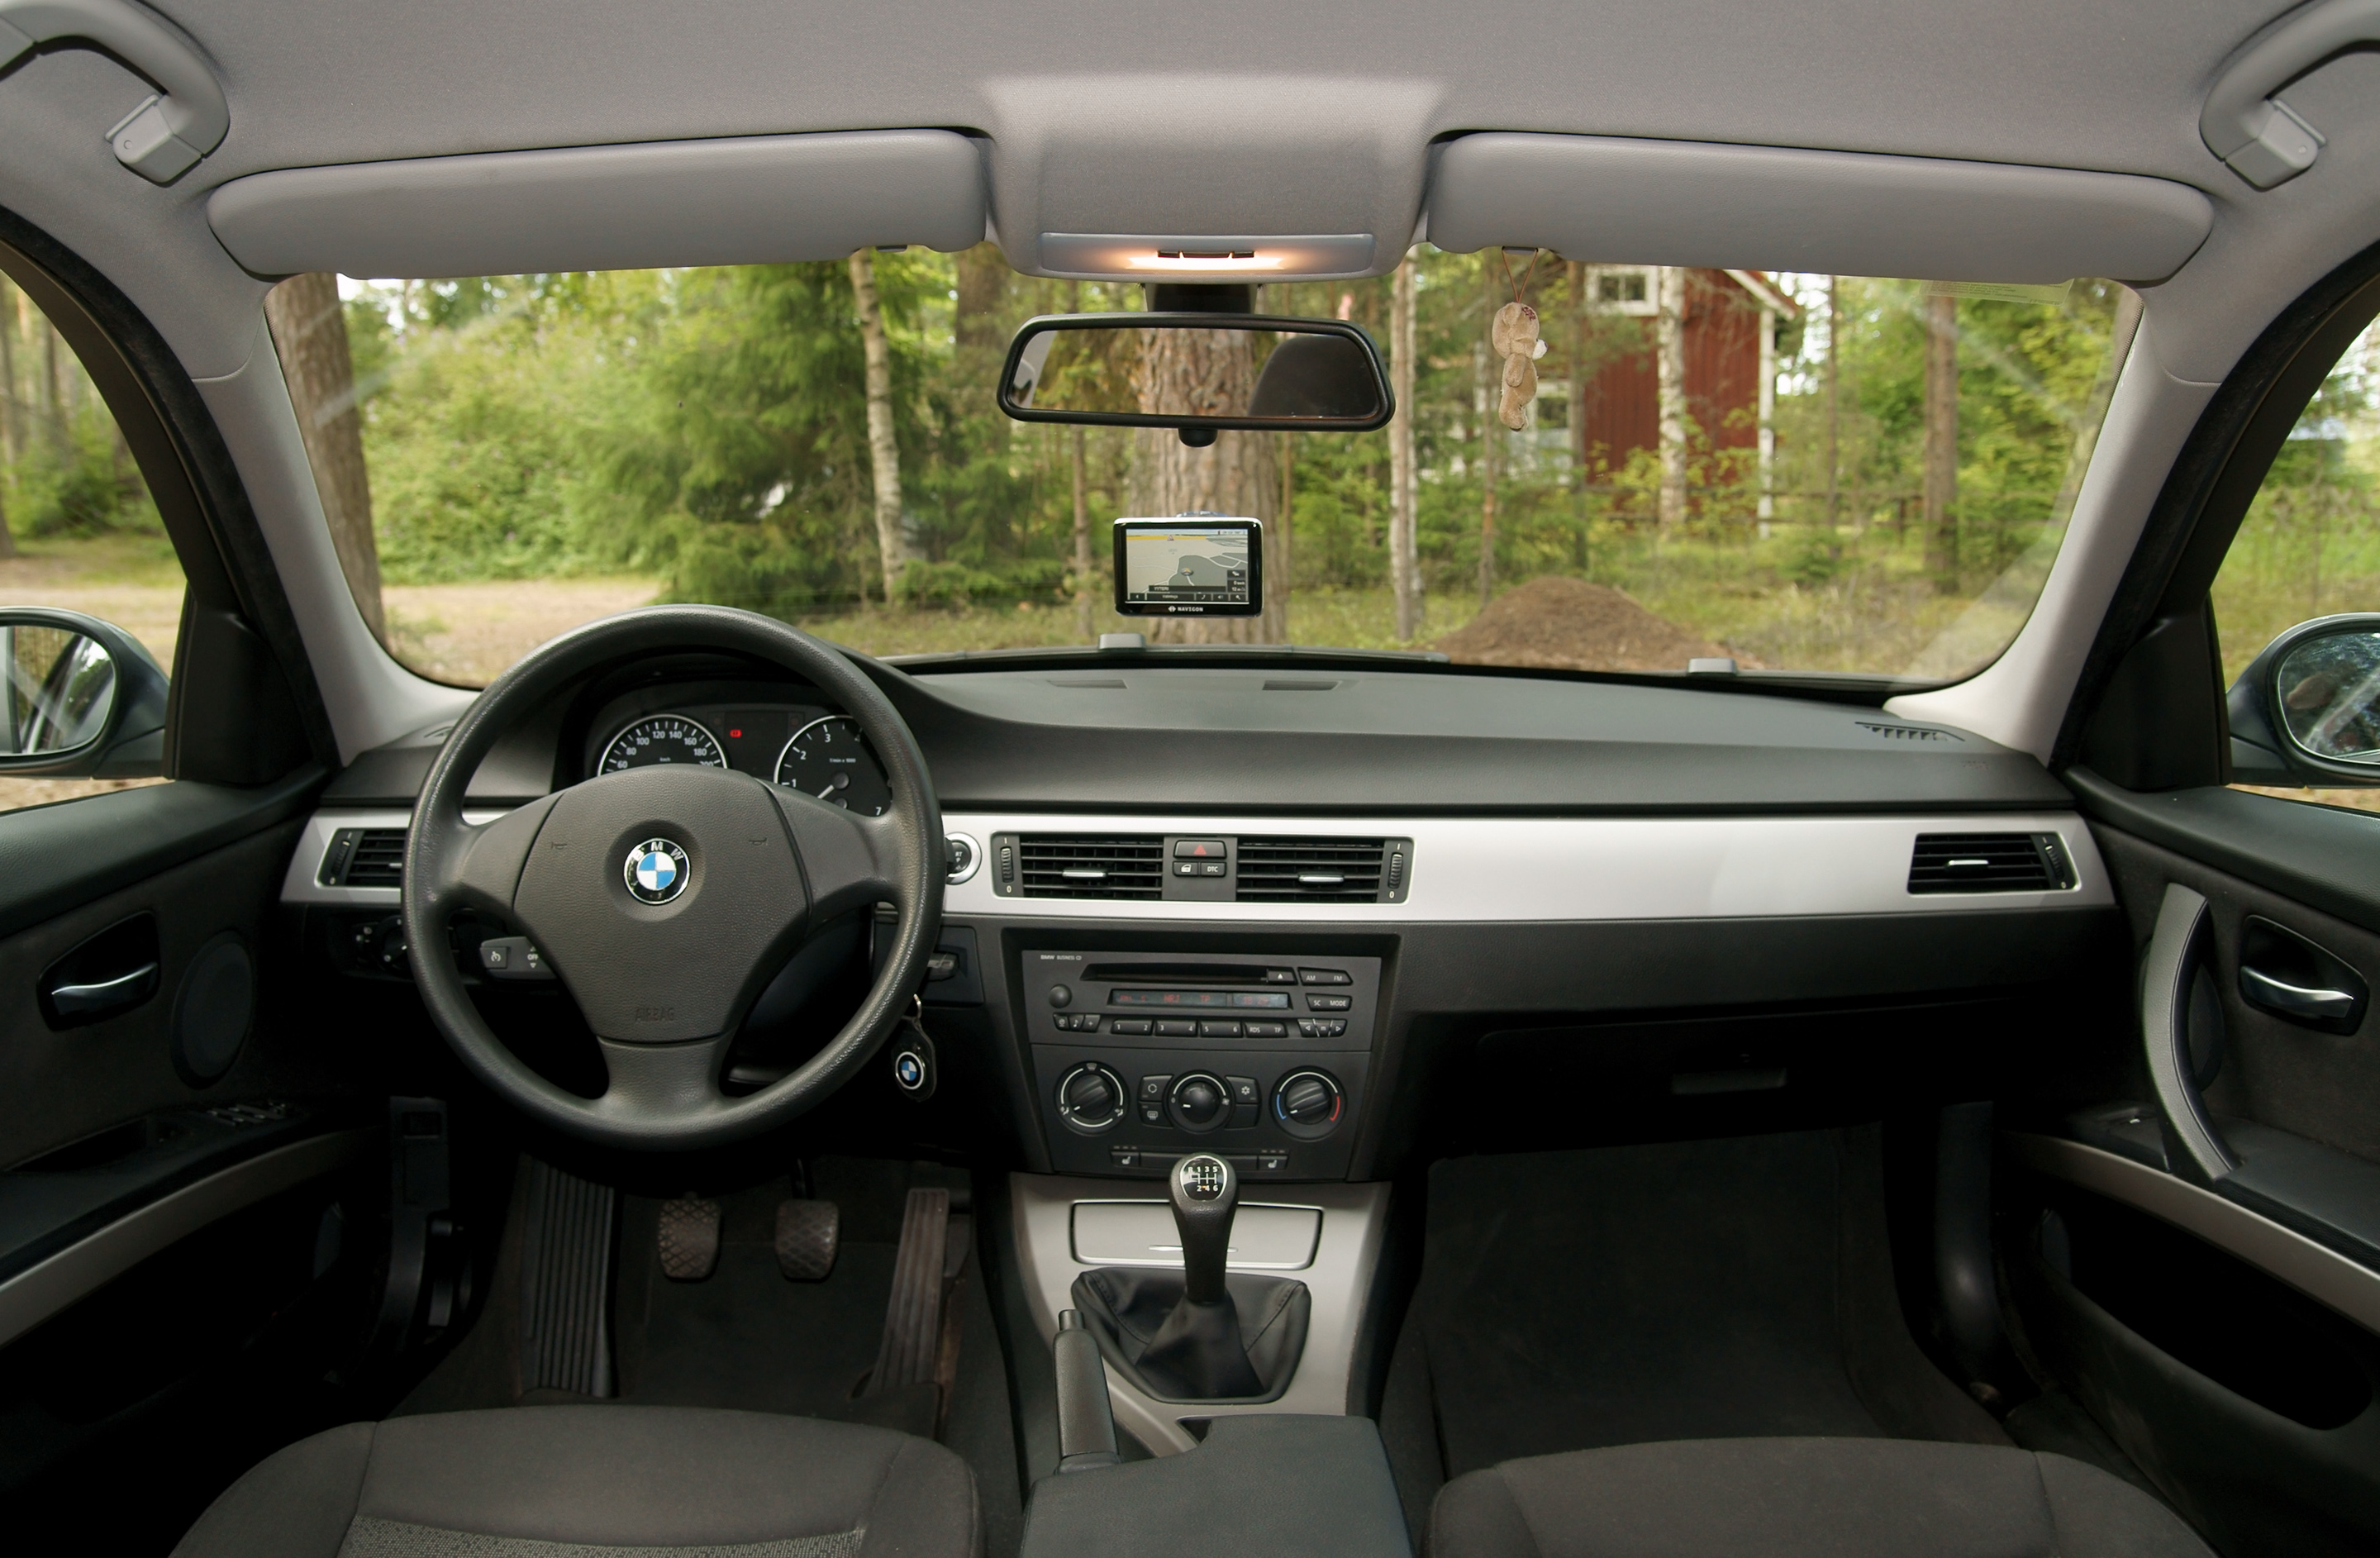 File:BMW E90 inside.jpg - Wikimedia Commons